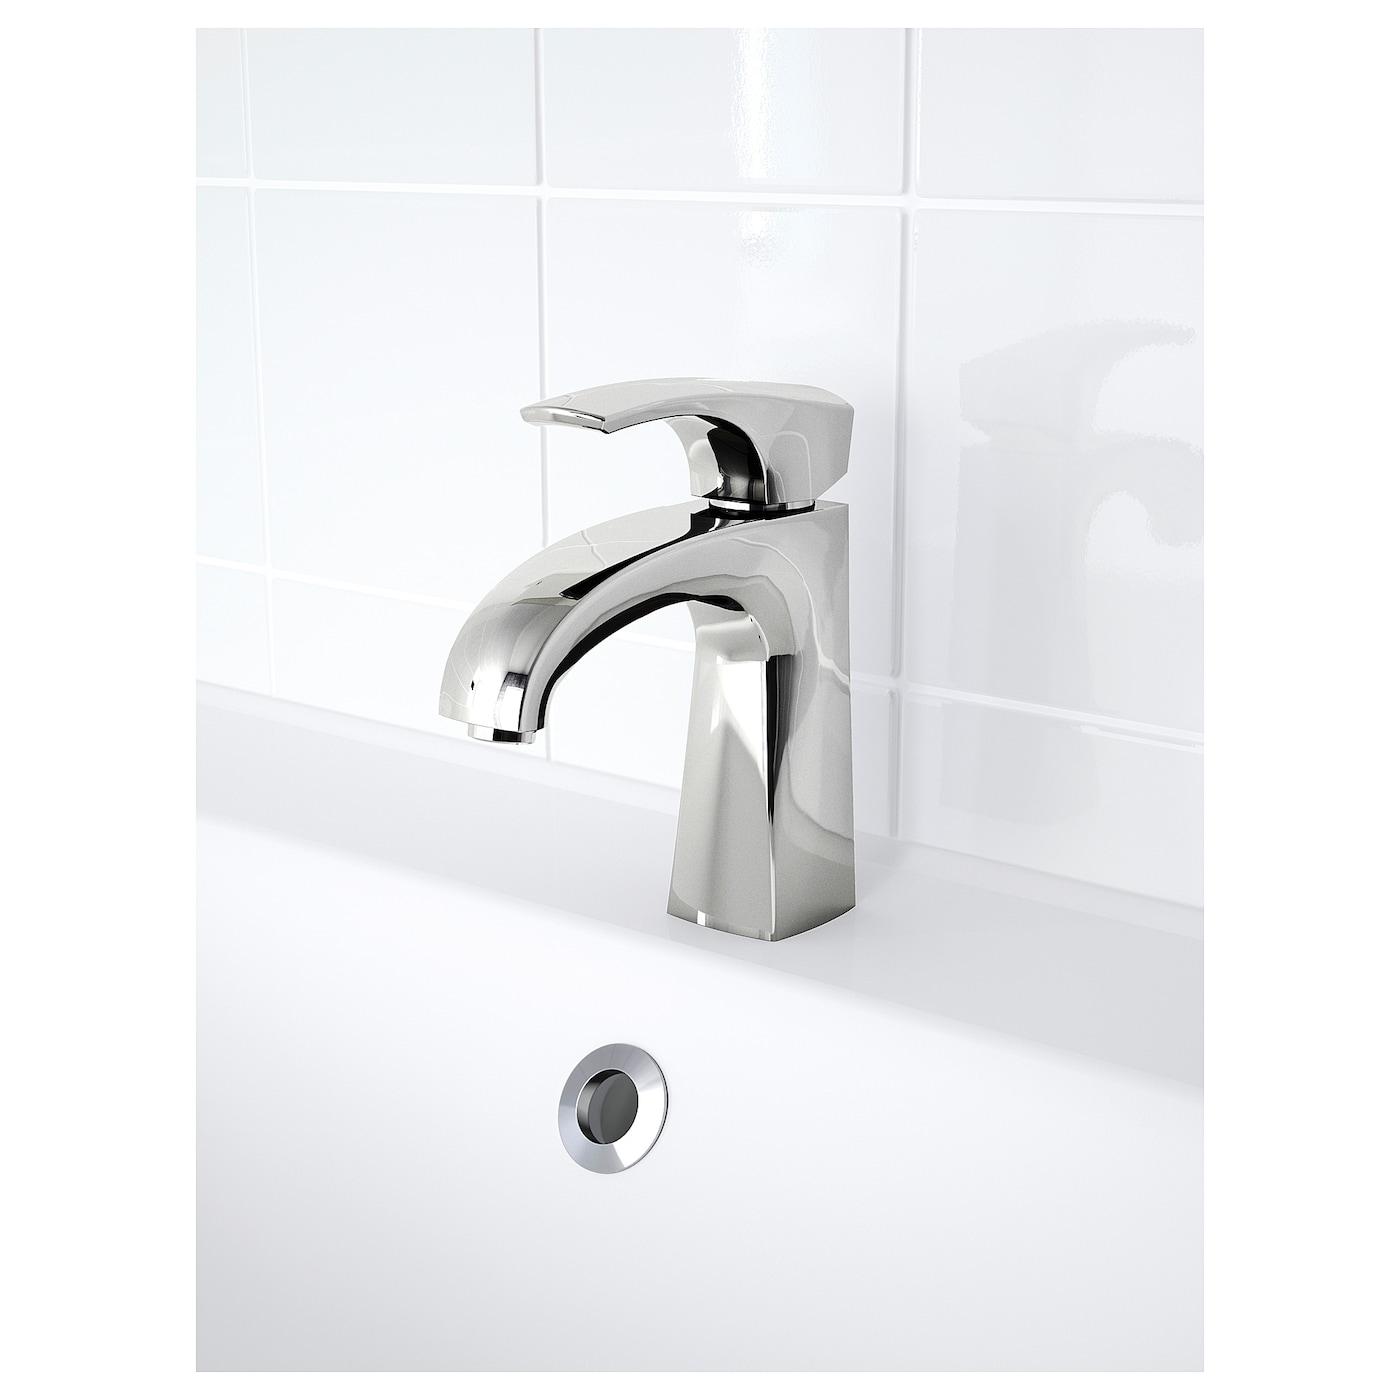 IKEA ASPSKÄR wash-basin mixer tap with strainer